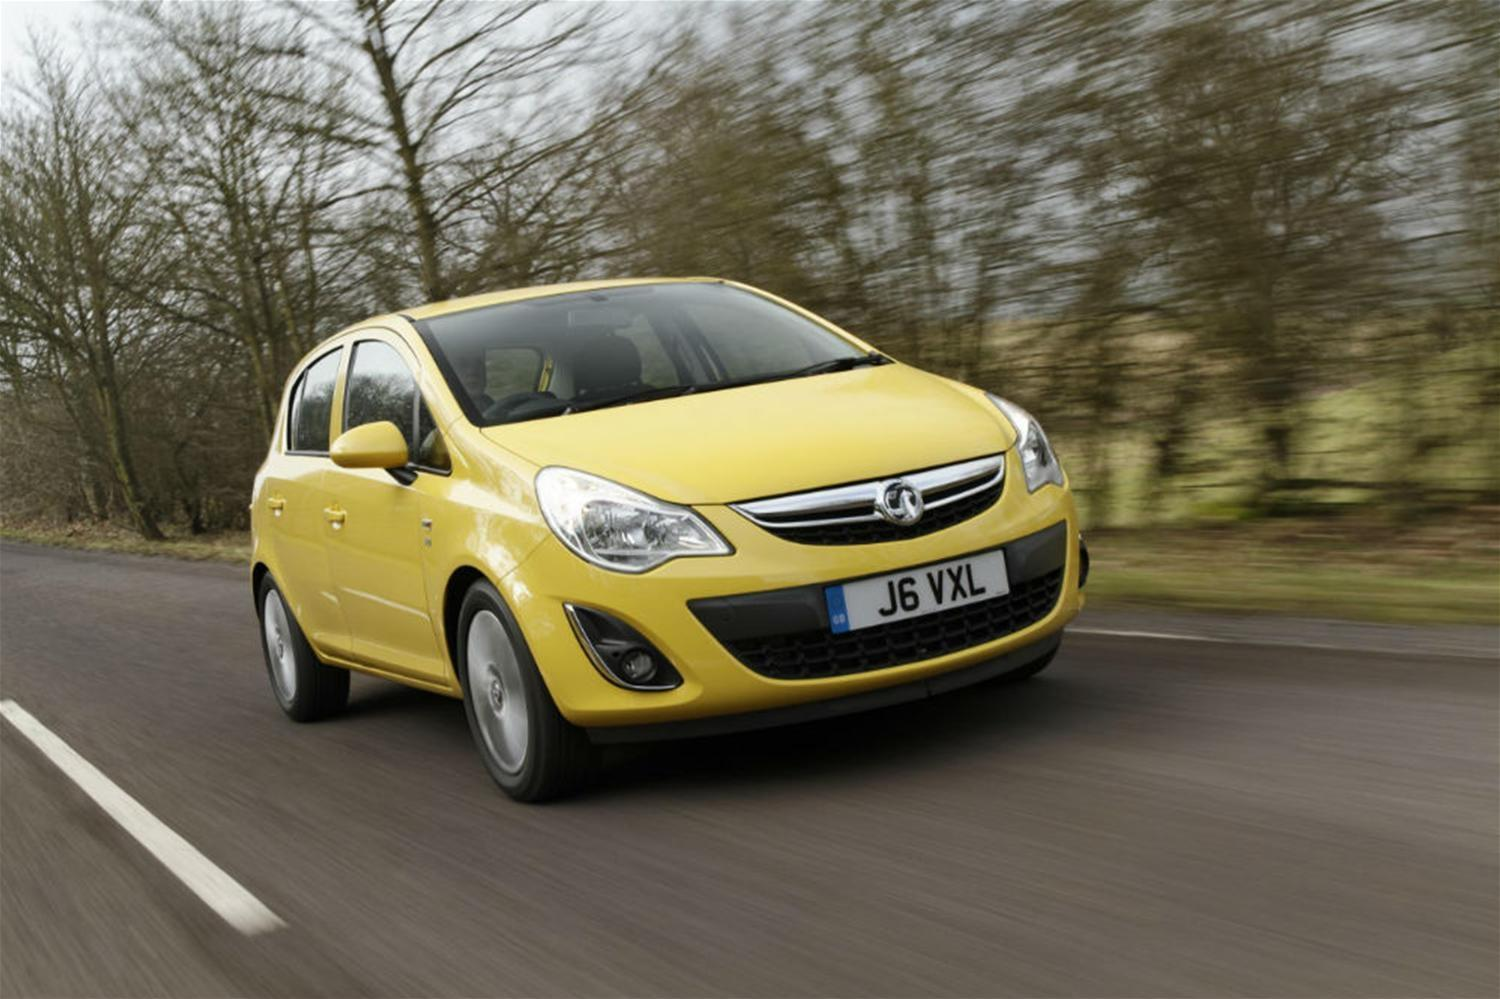 Vauxhall Big Event Offers 500 Pounds Free Fuel